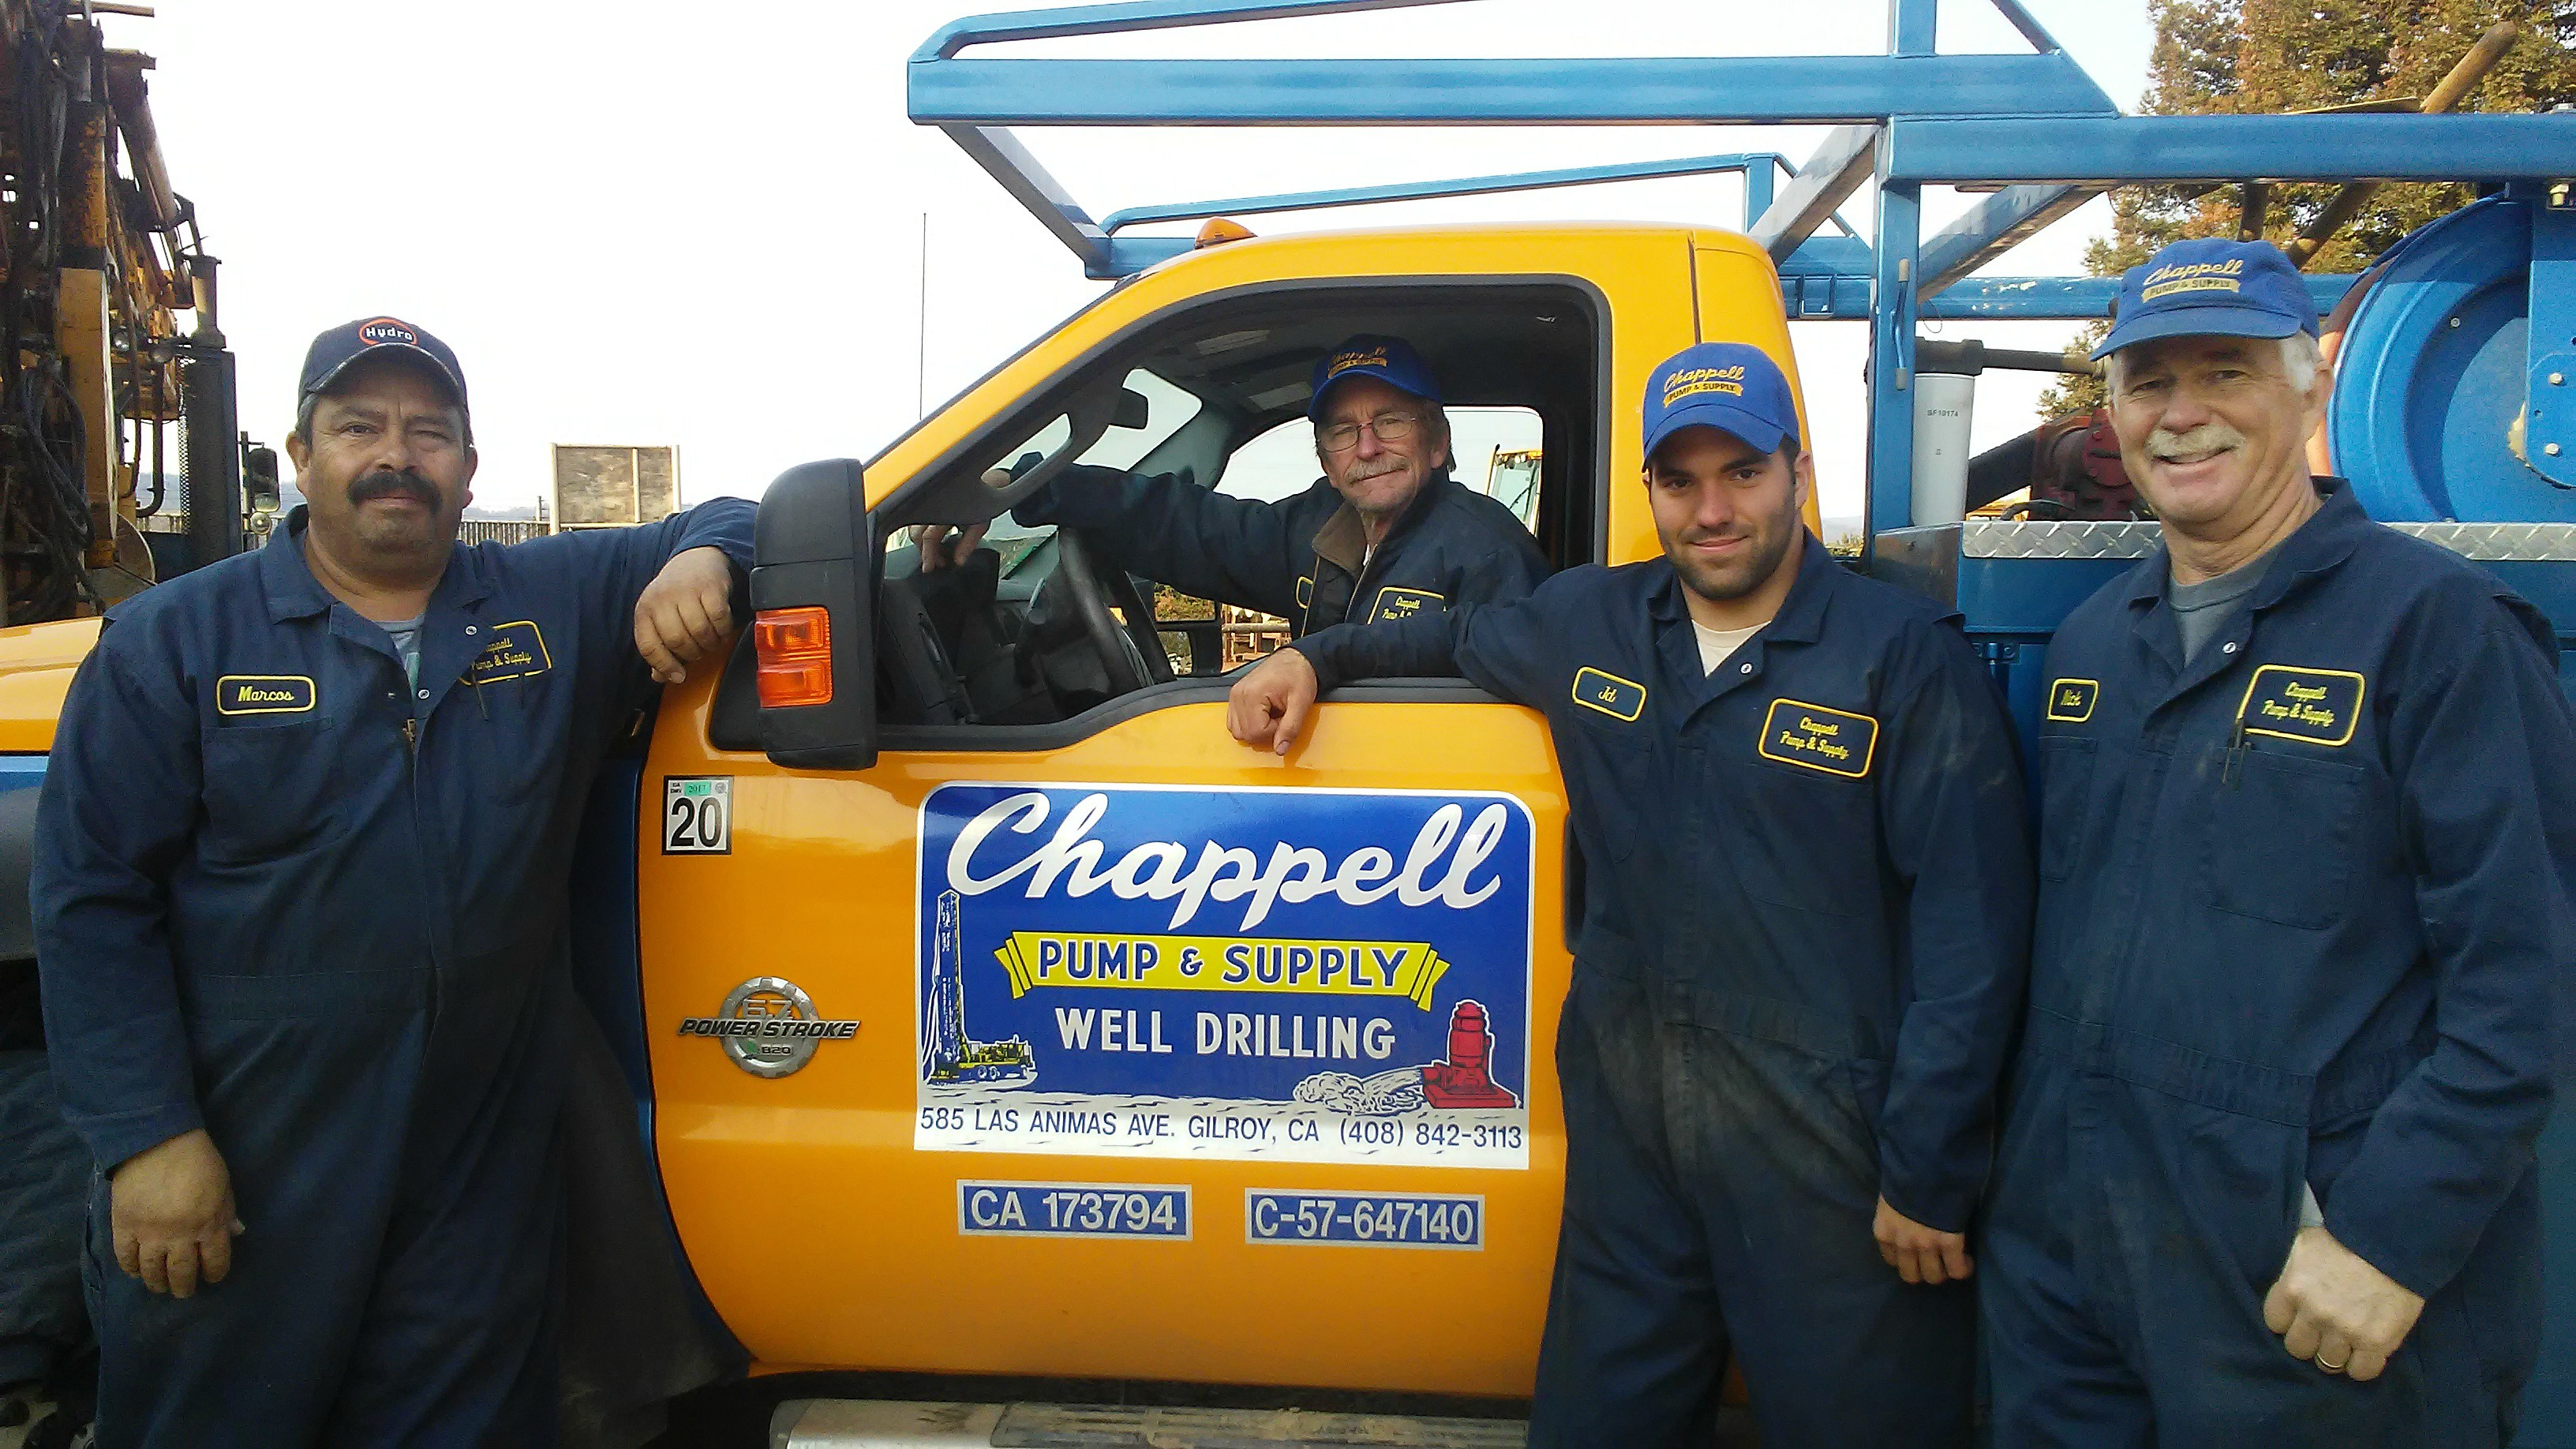 Chappell Pump & Supply